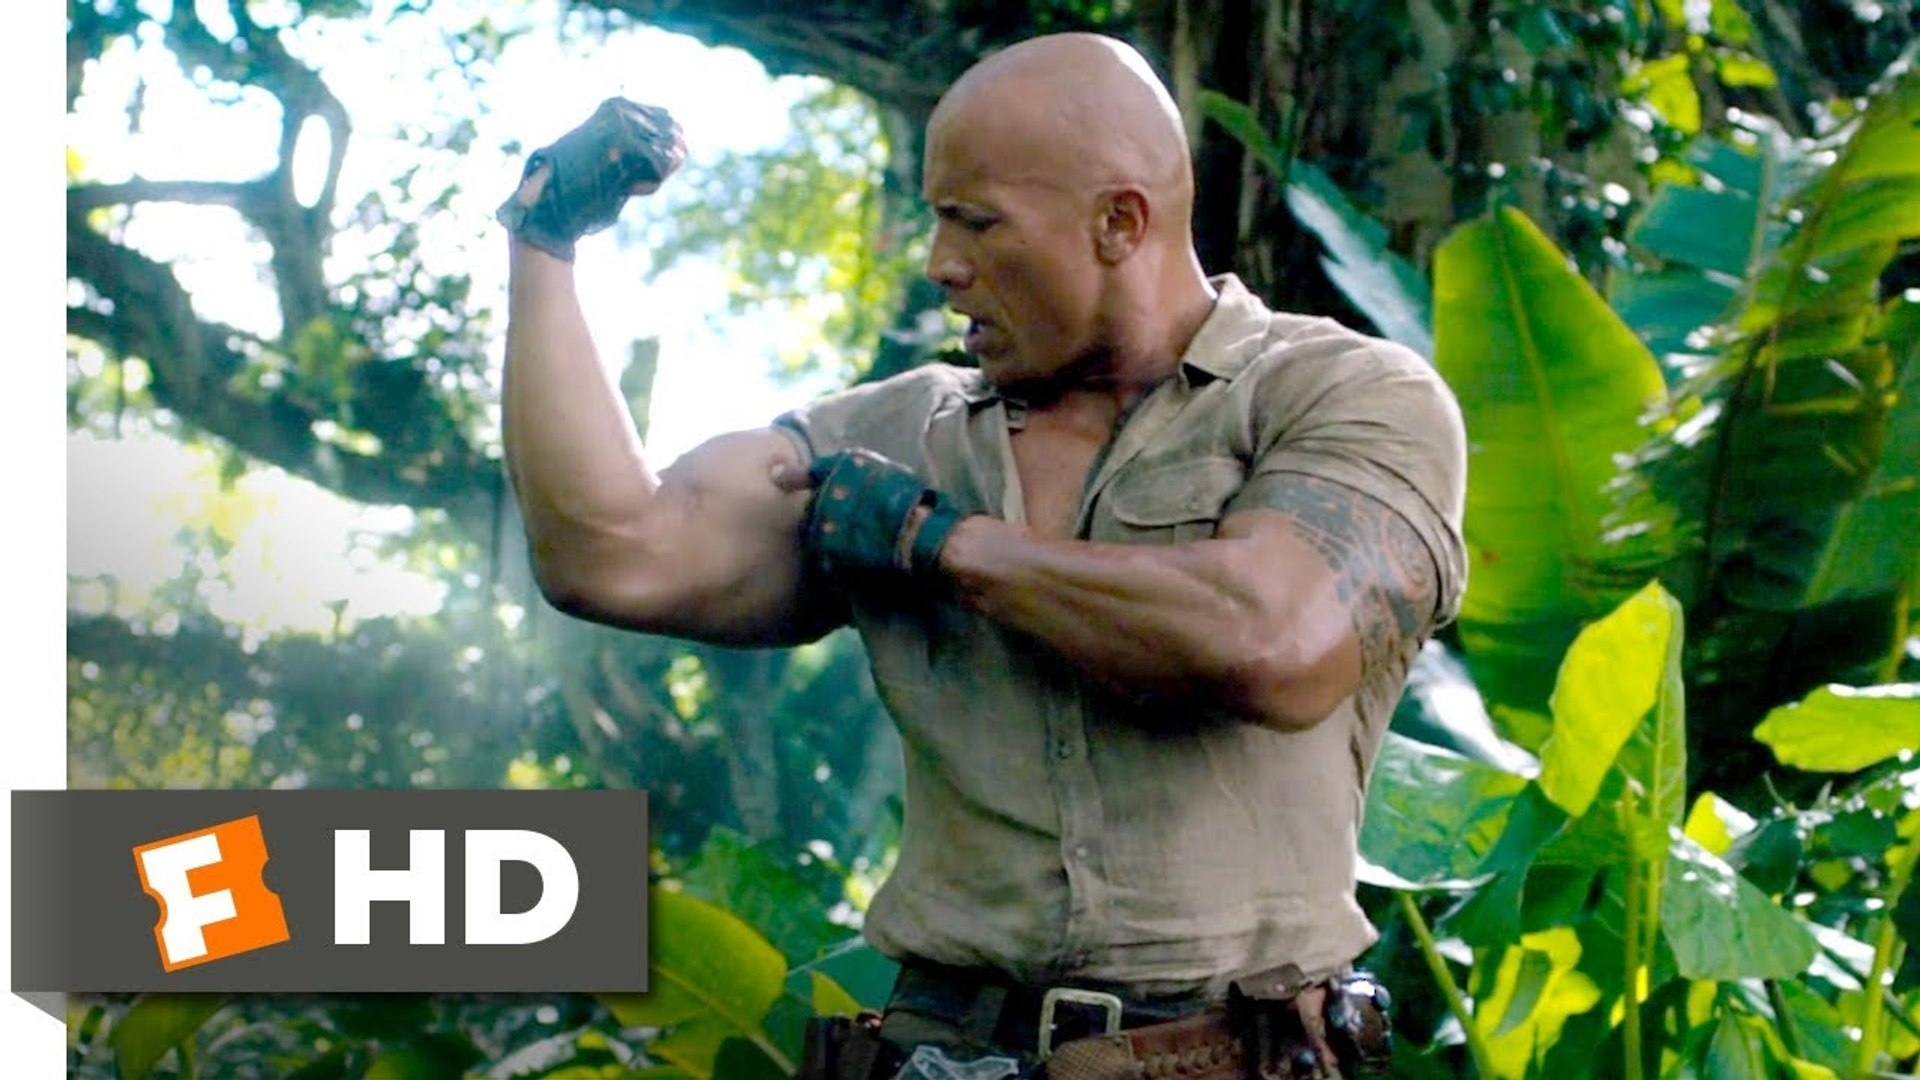 Jumanji 2 - Welcome to the Jungle (2017) - Choose Your Character Scene (1-10) - Hollywood Movies Eng